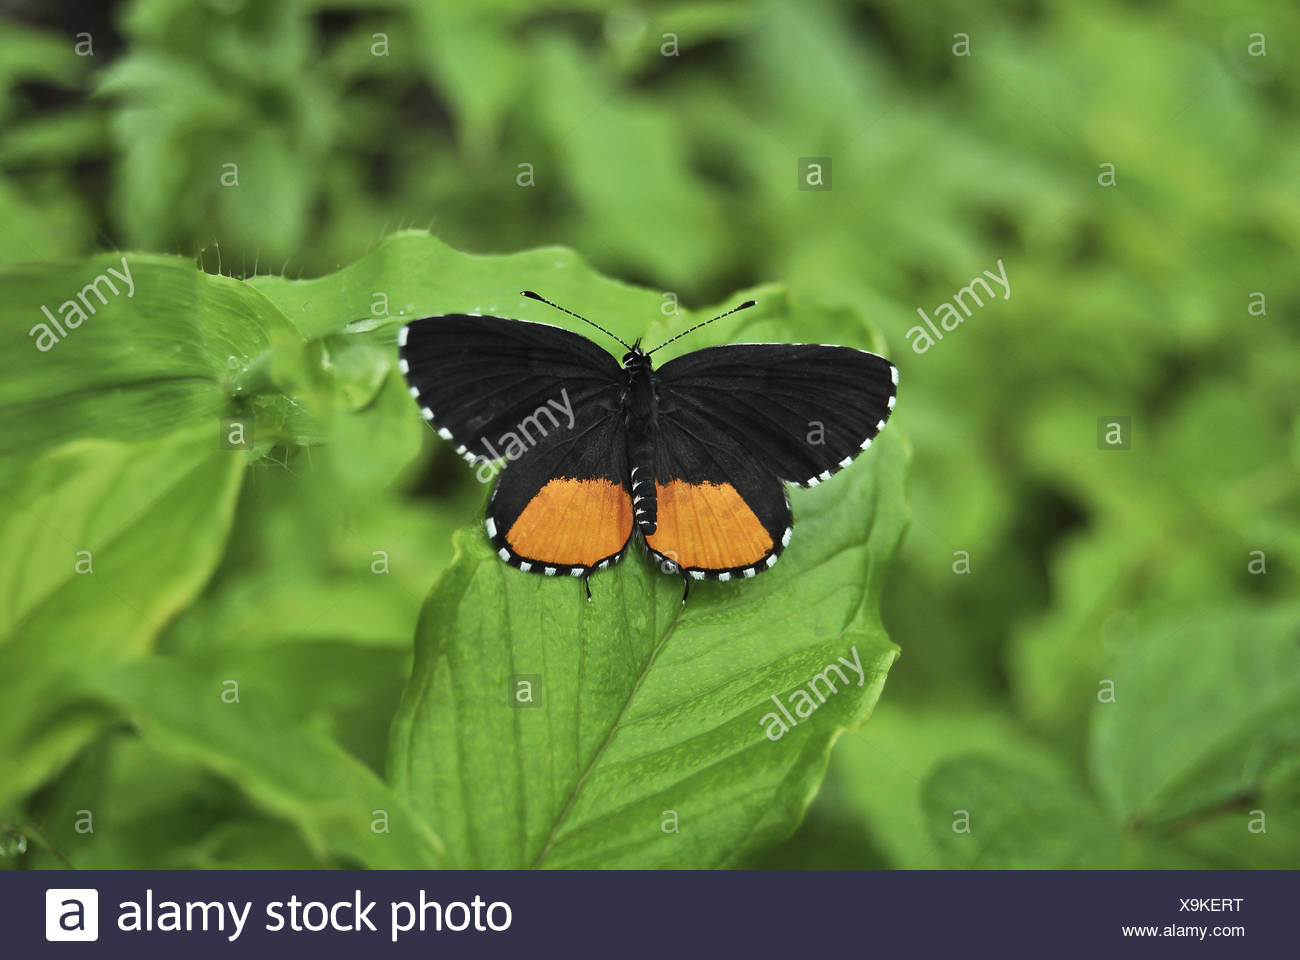 butterfly on a leaf, Pune, Maharashtra, India - Stock Image